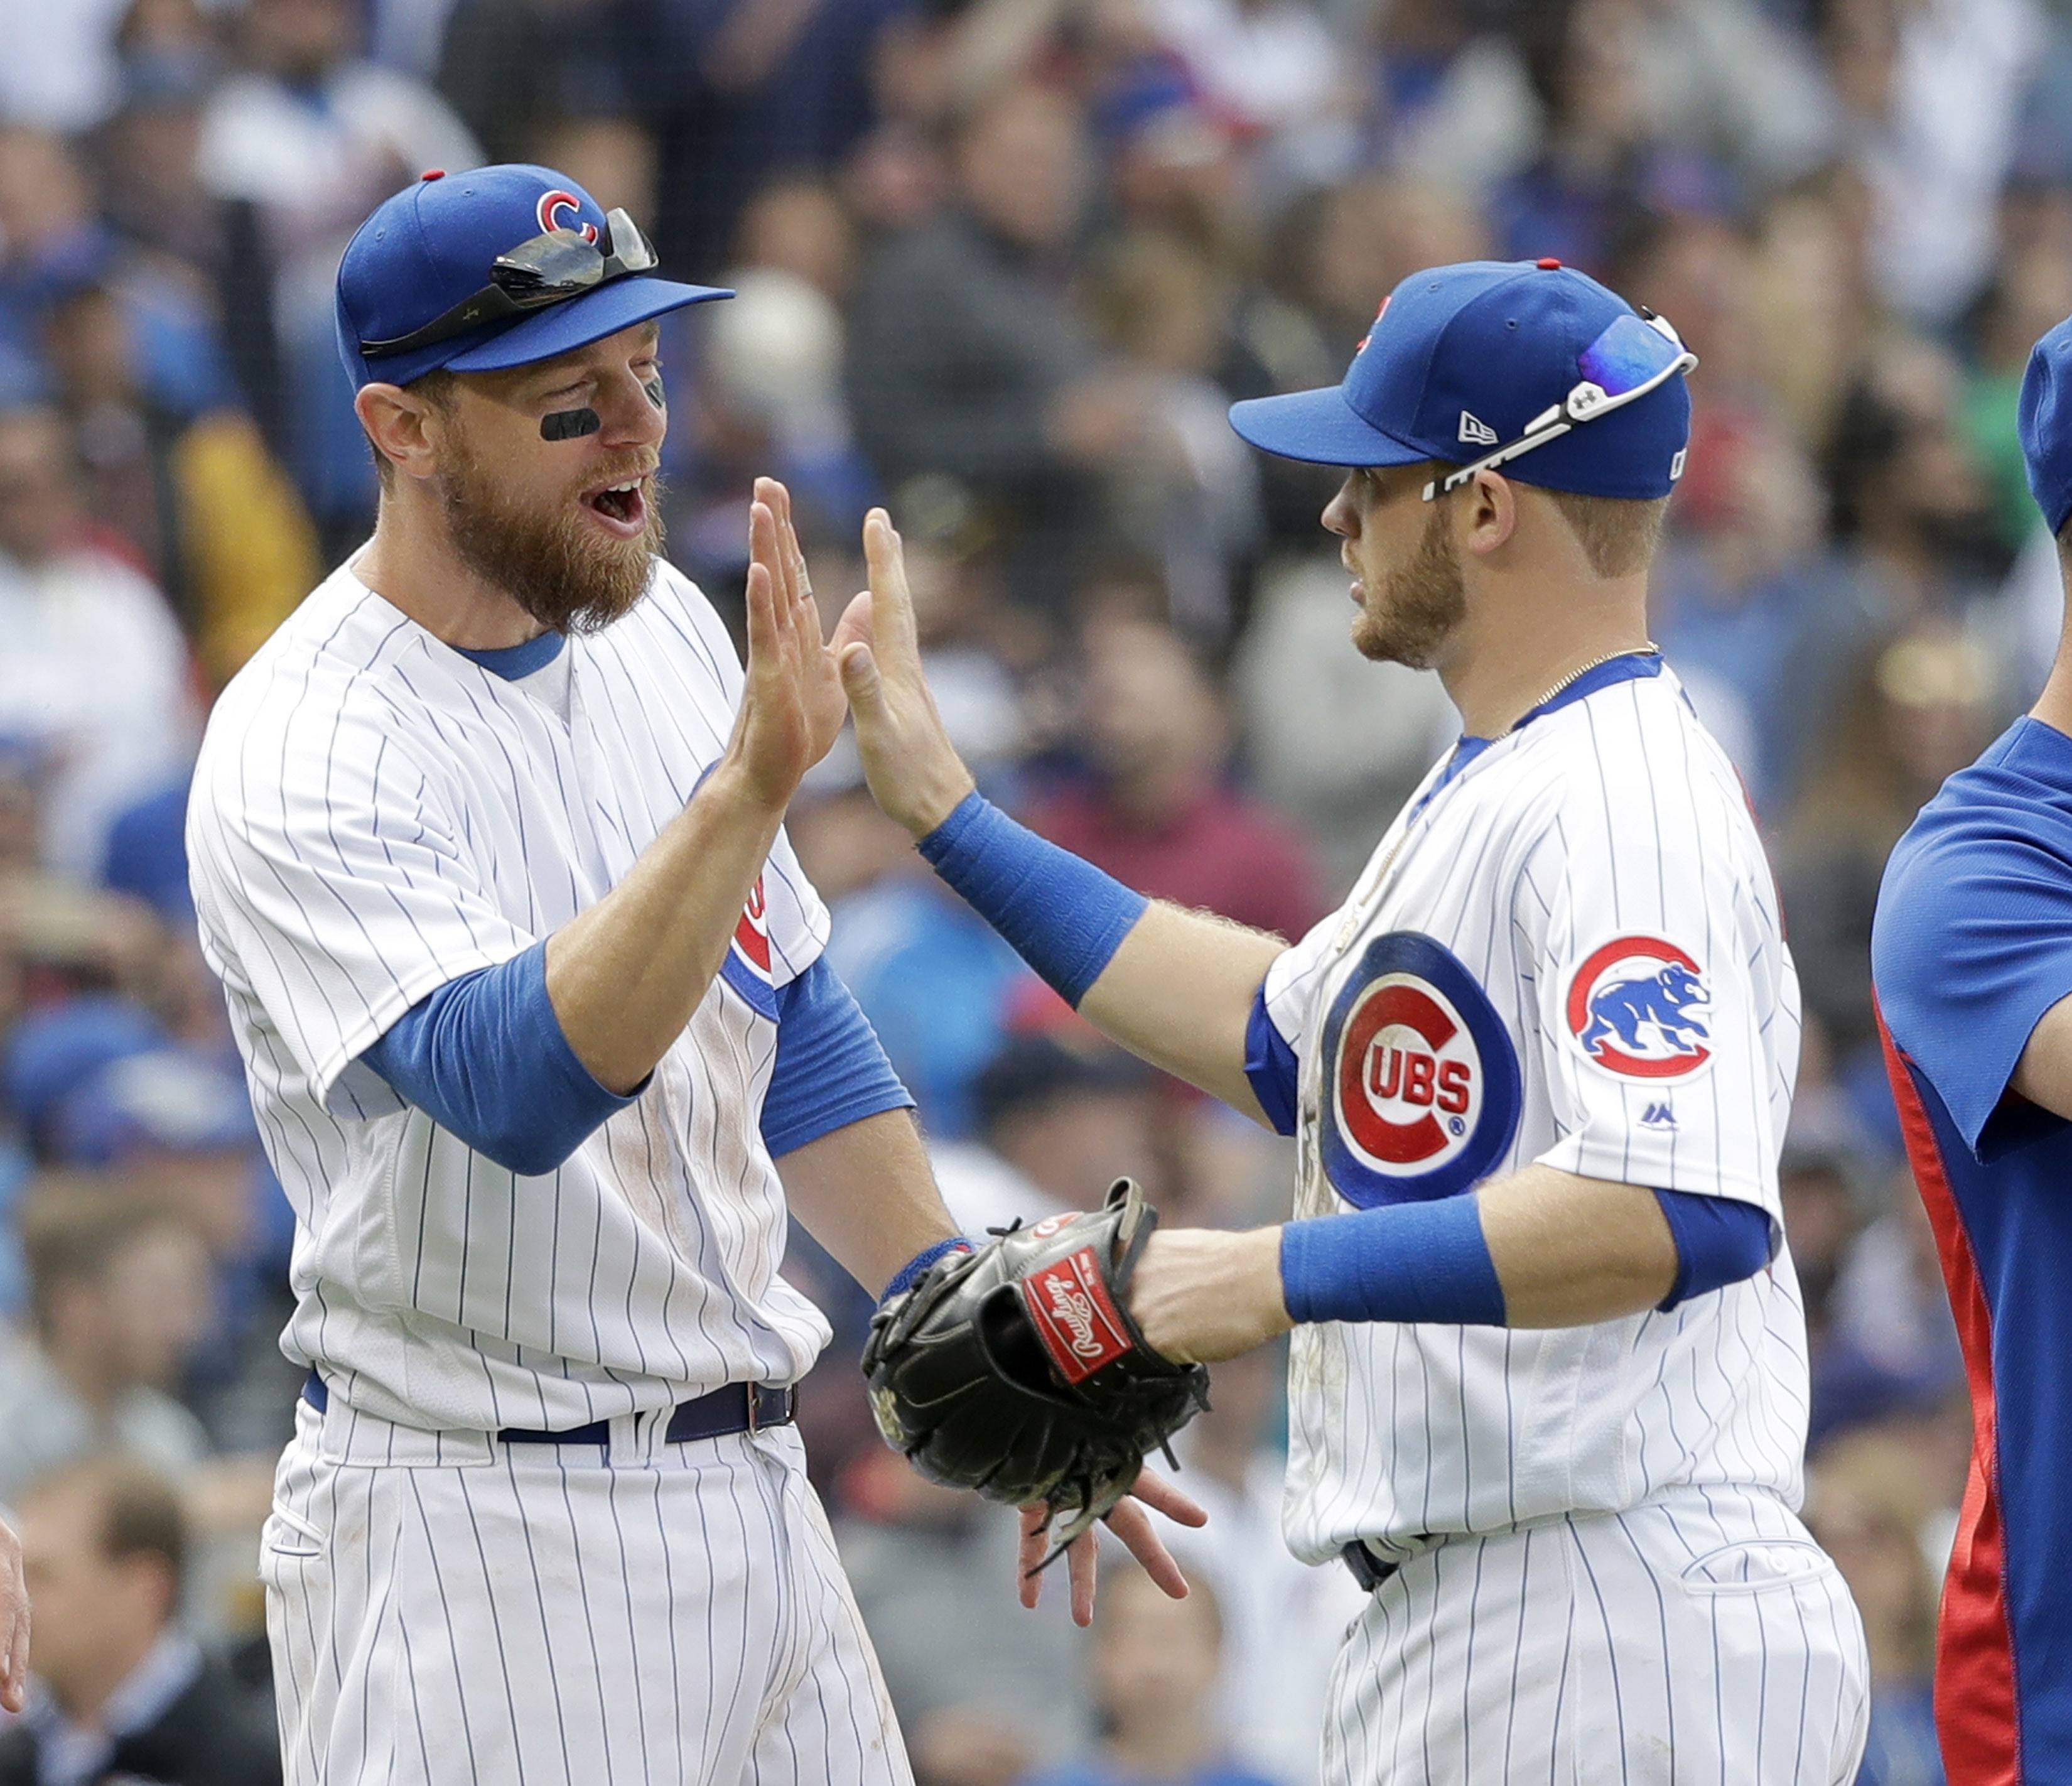 Chicago Cubs' Ben Zobrist, left, and Ian Happ celebrate their 3-1 win over the Pittsburgh Pirates at Wrigley Field. Zobrist had a couple key hits and Happ made 3 outstanding plays in left to seal the win for the Cubs.